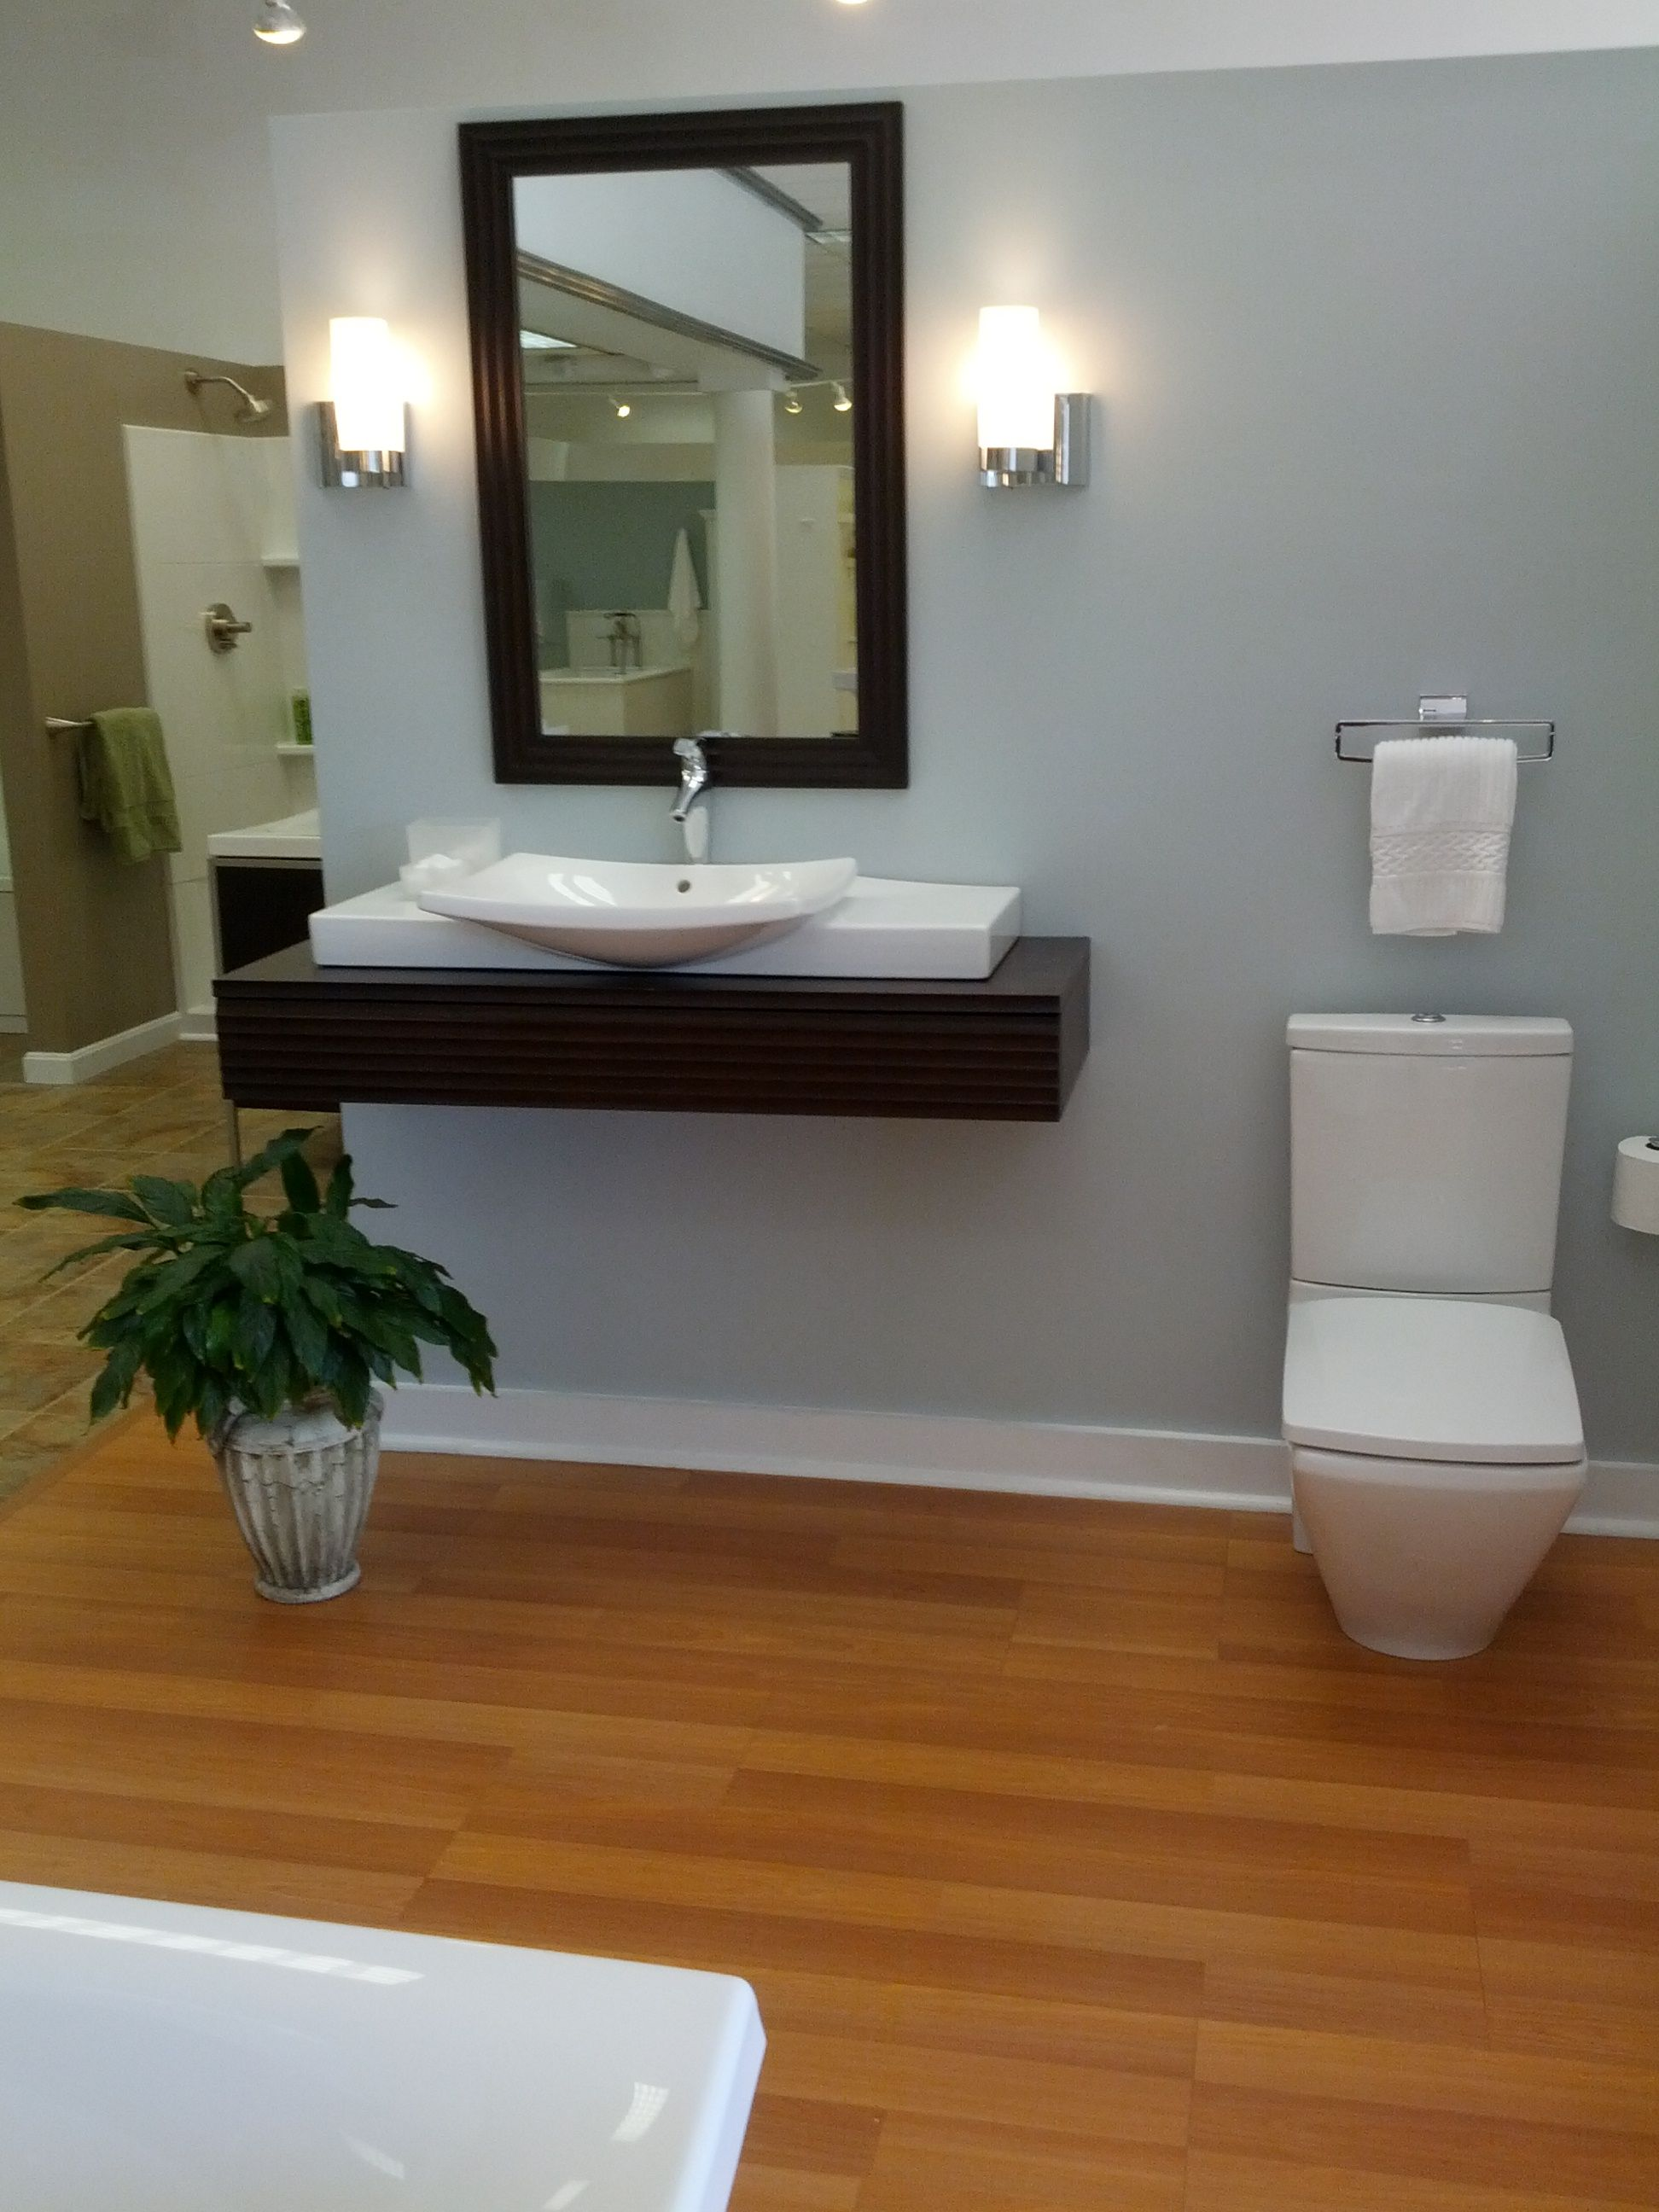 Bathroom Designs Vessel Sinks pictures of modern handicap bathrooms | for the handicap bathroom